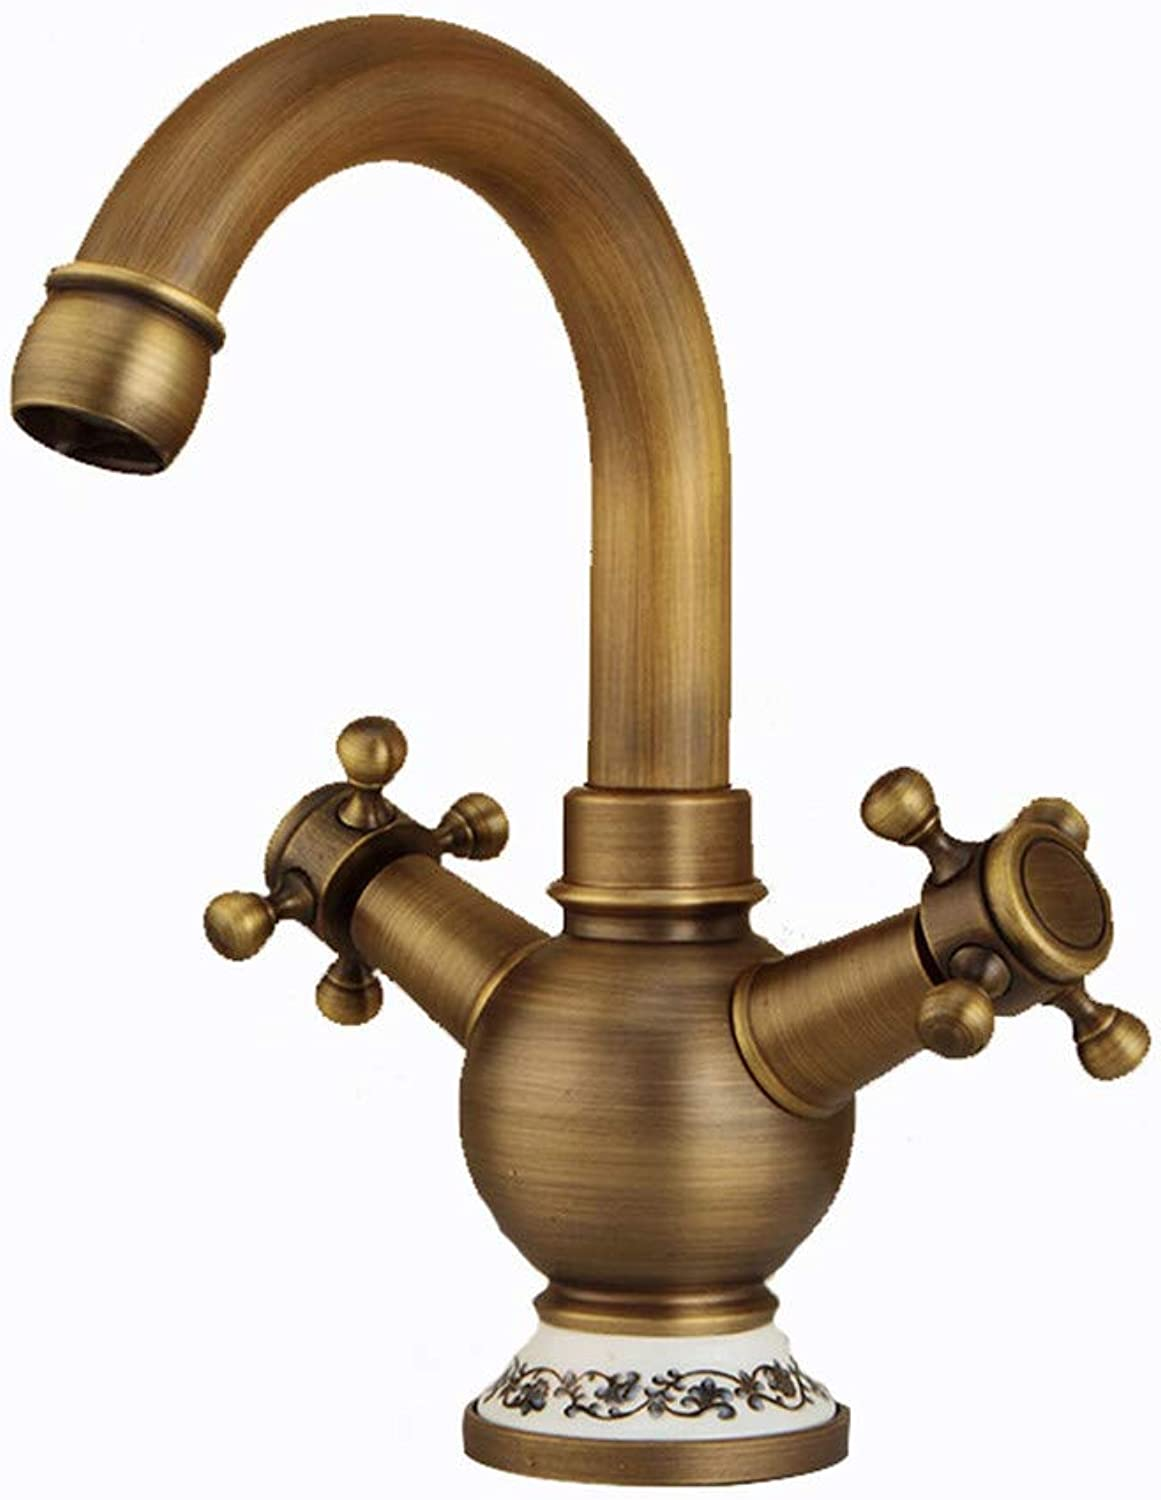 Copper antique faucet European hotel basin faucet single handle single hole above counter basin hot and cold water mixer